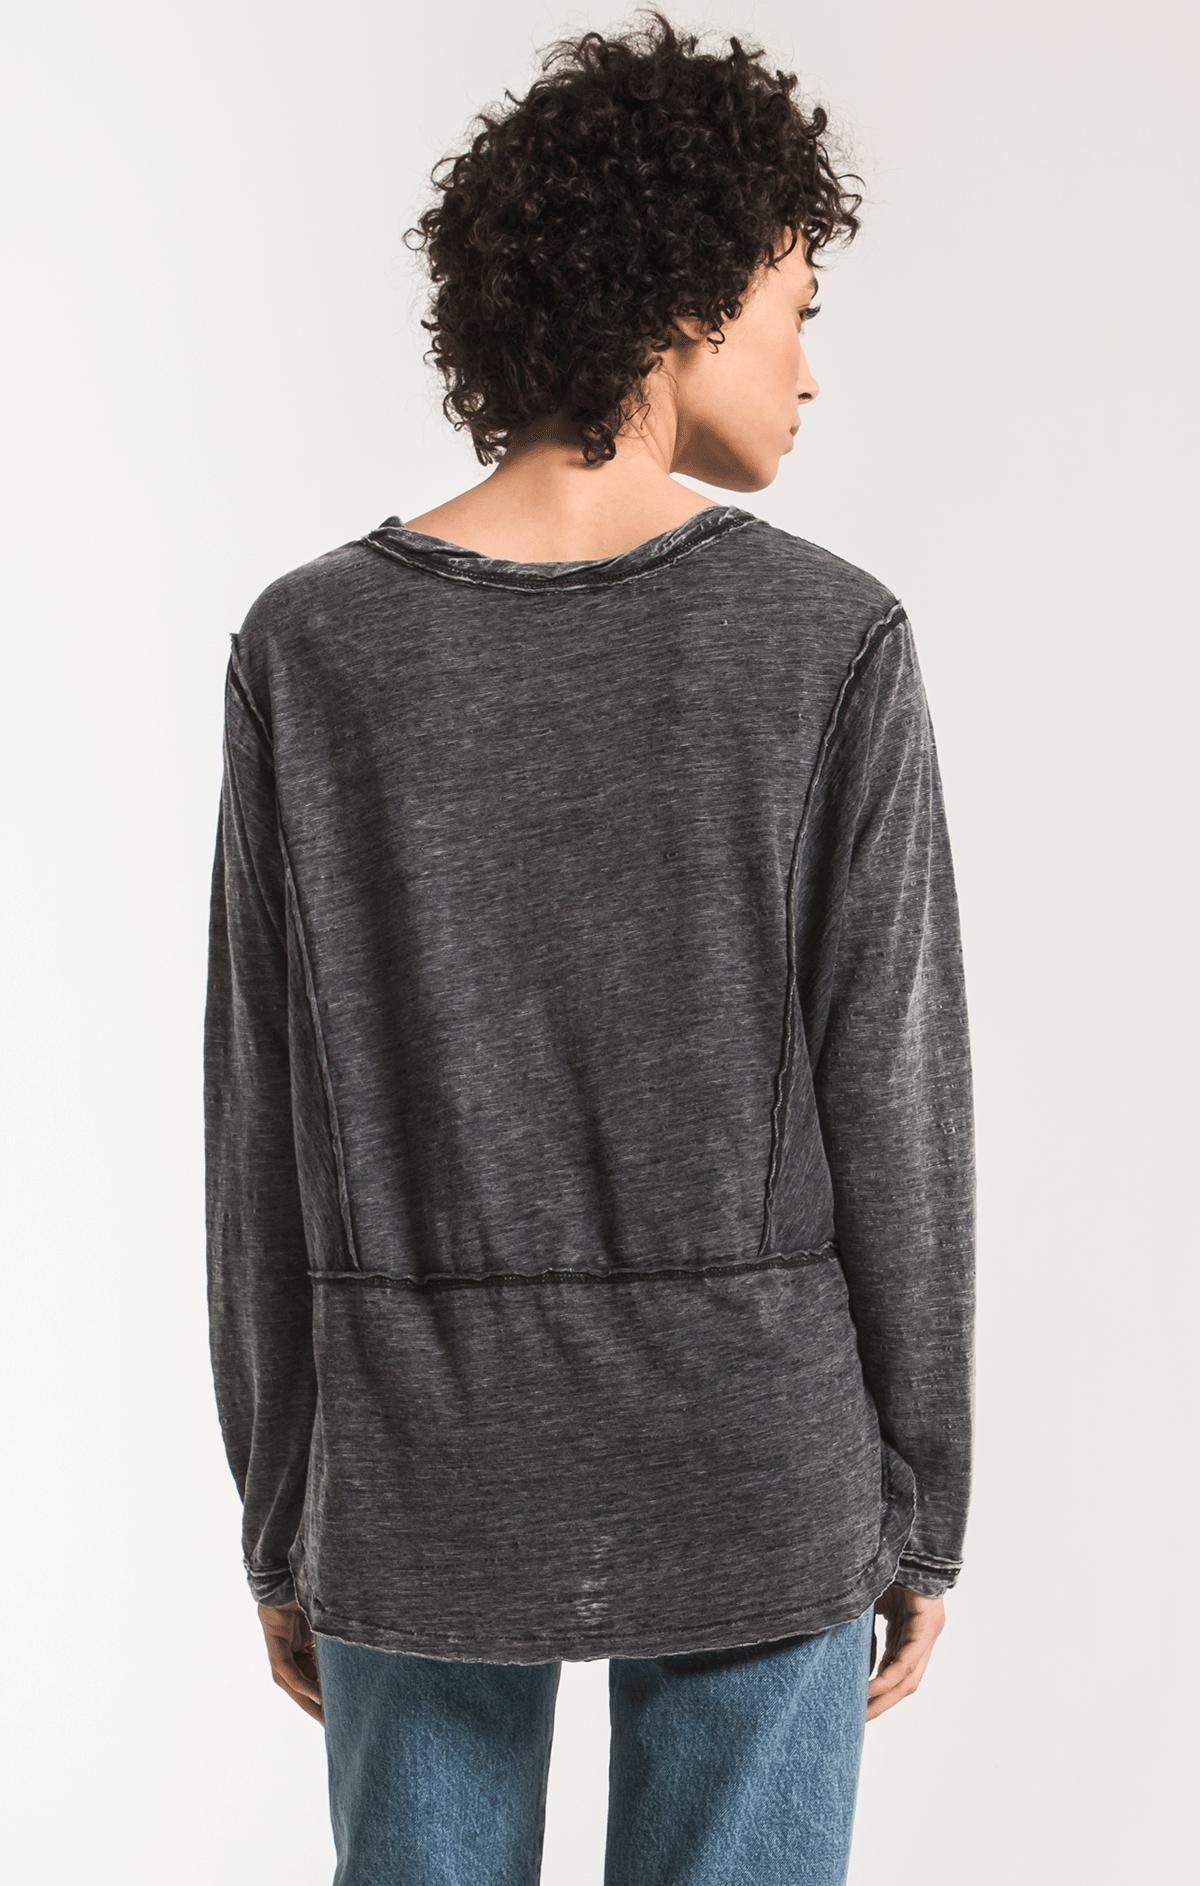 Tops The Airy Slub Long Sleeve Top Black